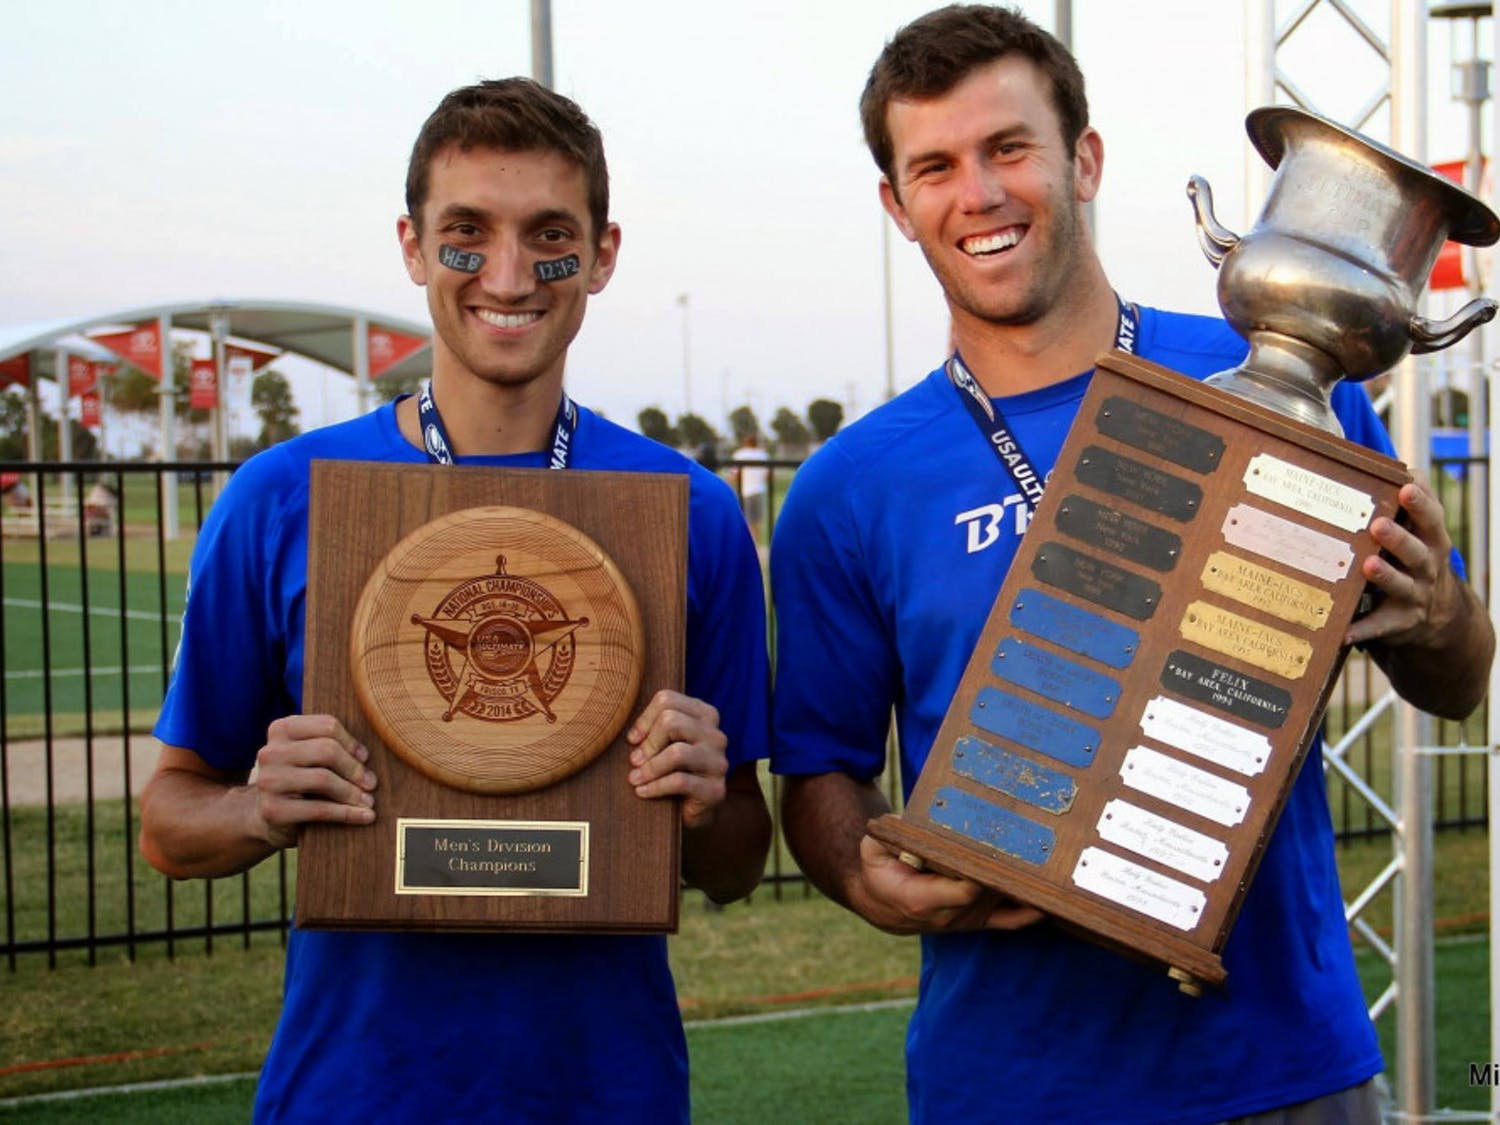 Kurt Gibson (left) and Brodie Smith (right) are both UF alumni. They met on the UF Ultimate Frisbee team, and have been on CBS show The Amazing Race. Gibson said this photo was when they won the USA Ultimate Club Championship with Denver's Johnny Bravo in 2014.